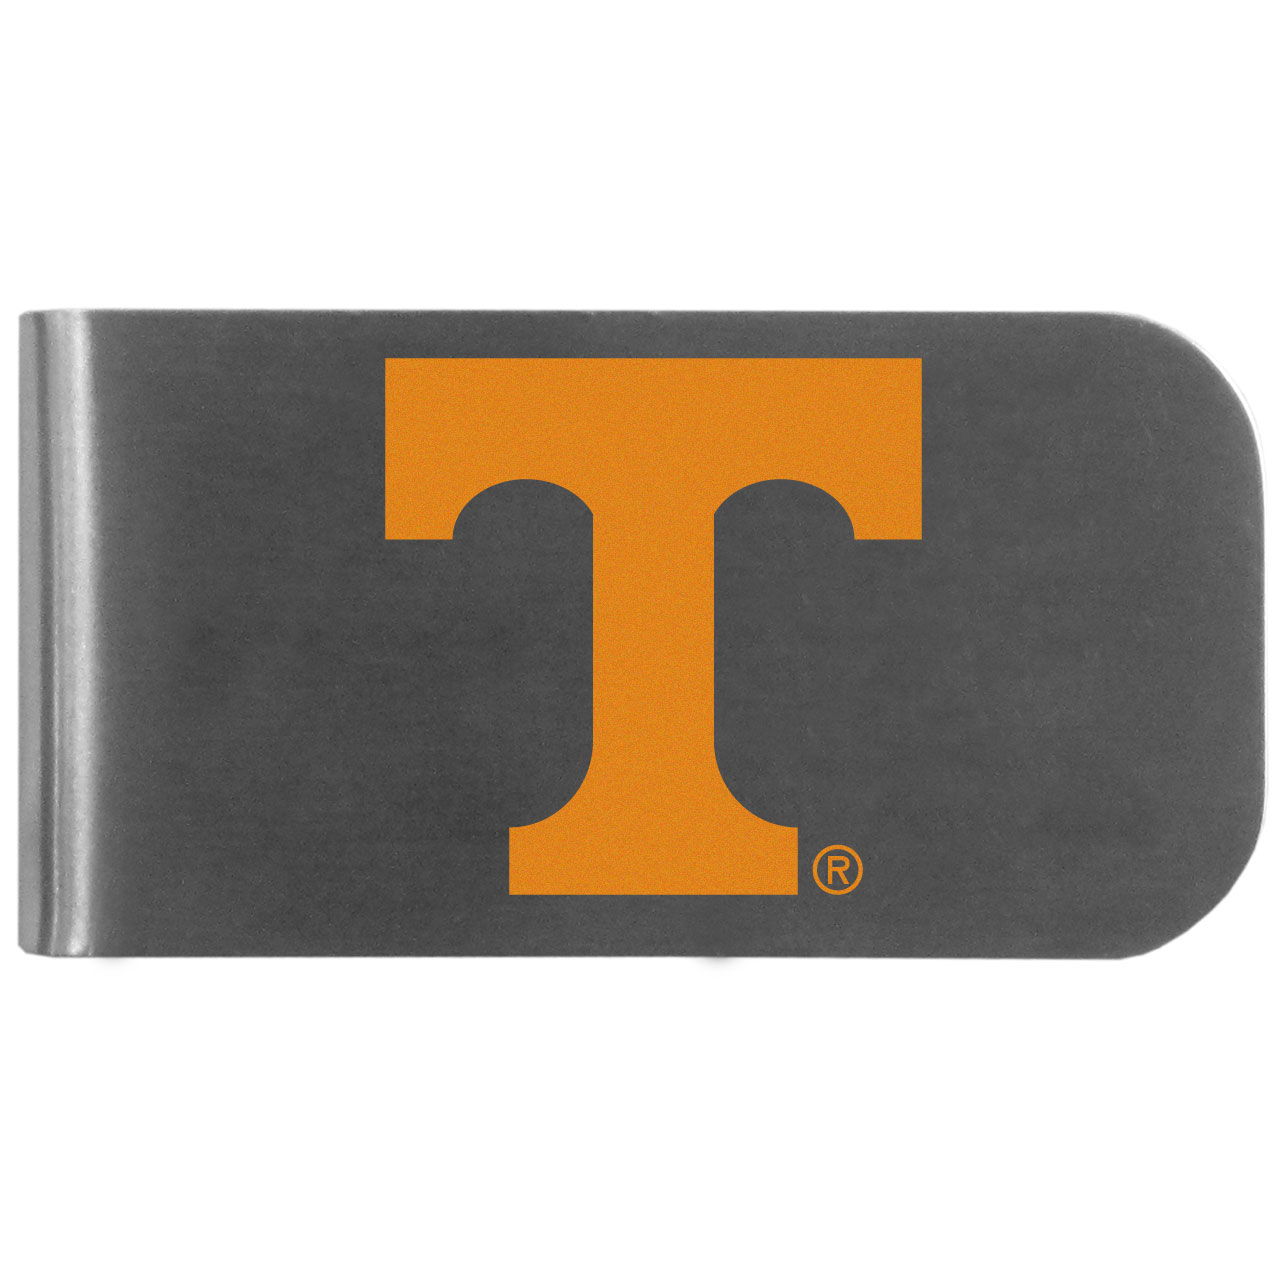 Tennessee Volunteers Logo Bottle Opener Money Clip - This unique money clip features a classic, brushed-metal finish with a handy bottle opener feature on the back. The clip has the Tennessee Volunteers logo expertly printed on the front of the clip.